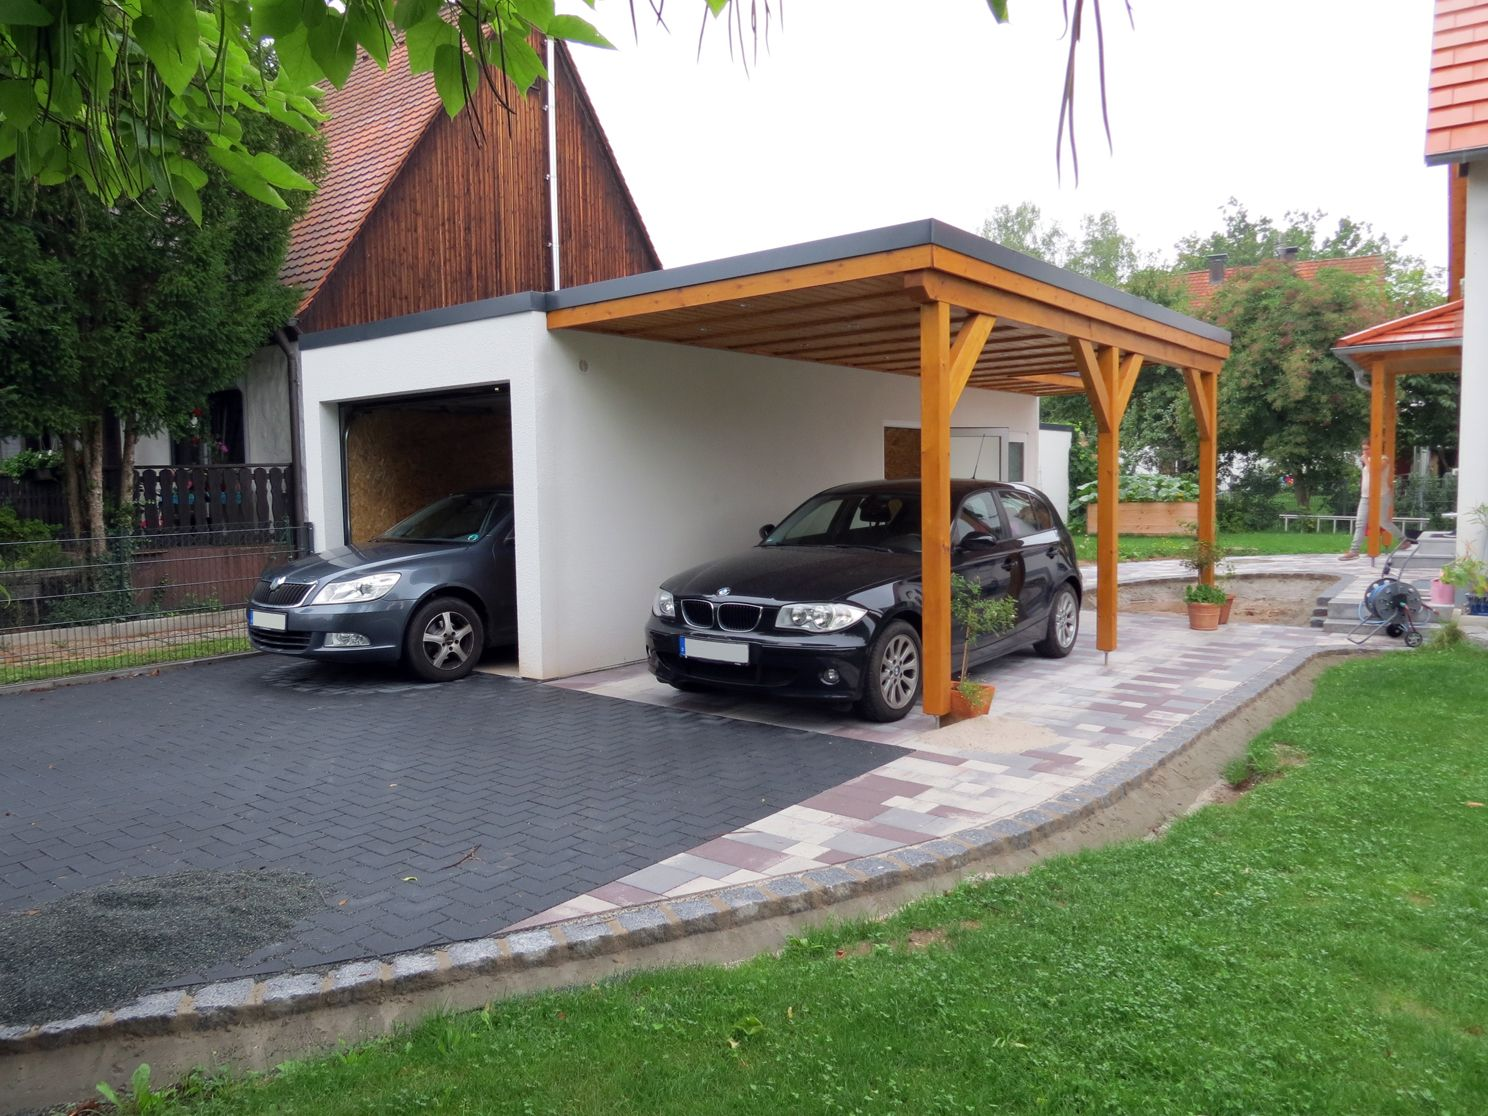 Holz Flachdach Abdichten Garage Mit Carport In Holz Optik Carport In 2019 Garage